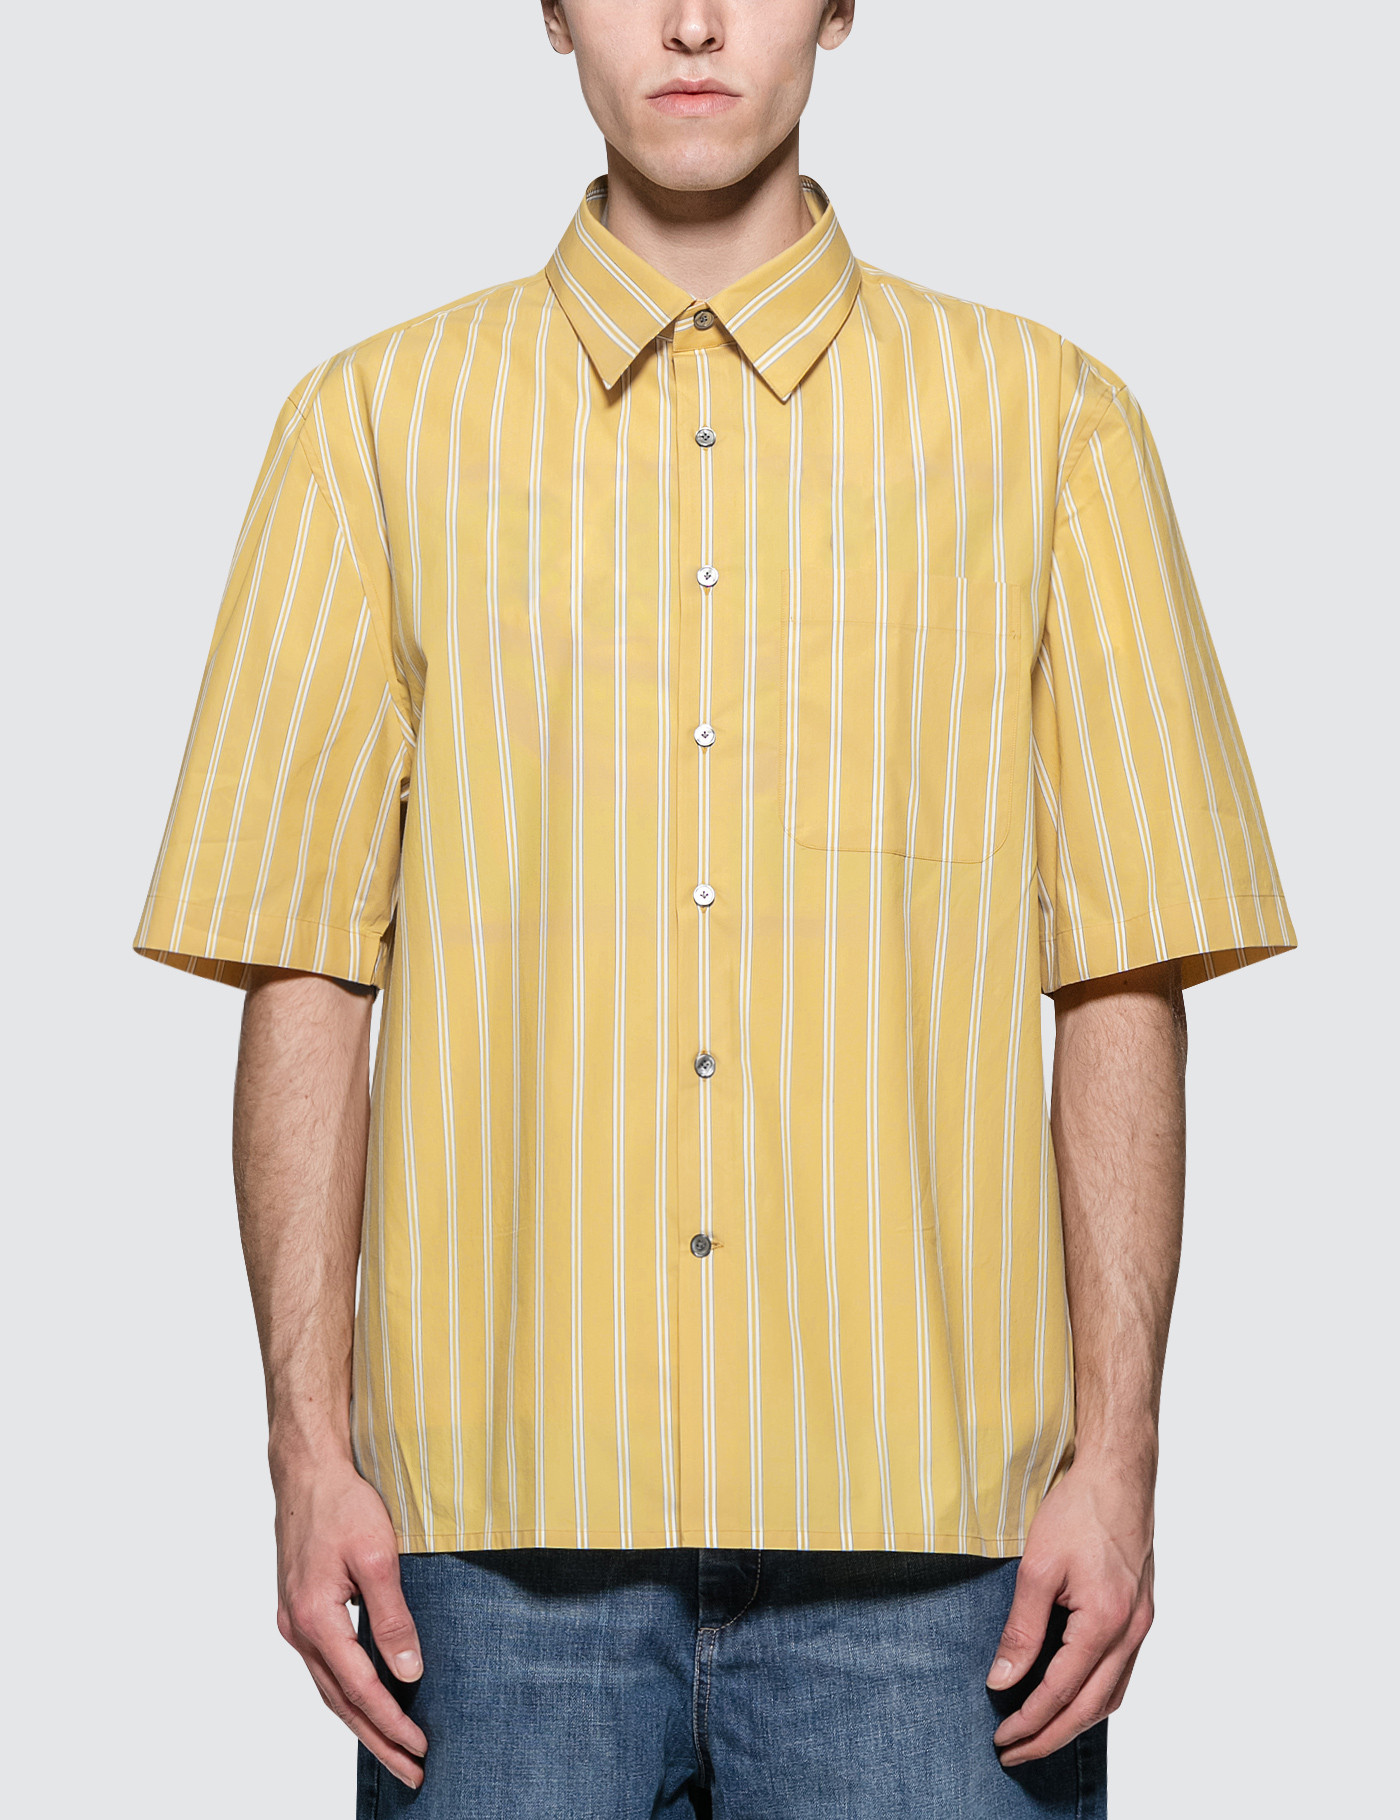 Oversized S/S Shirt with Chest Pocket